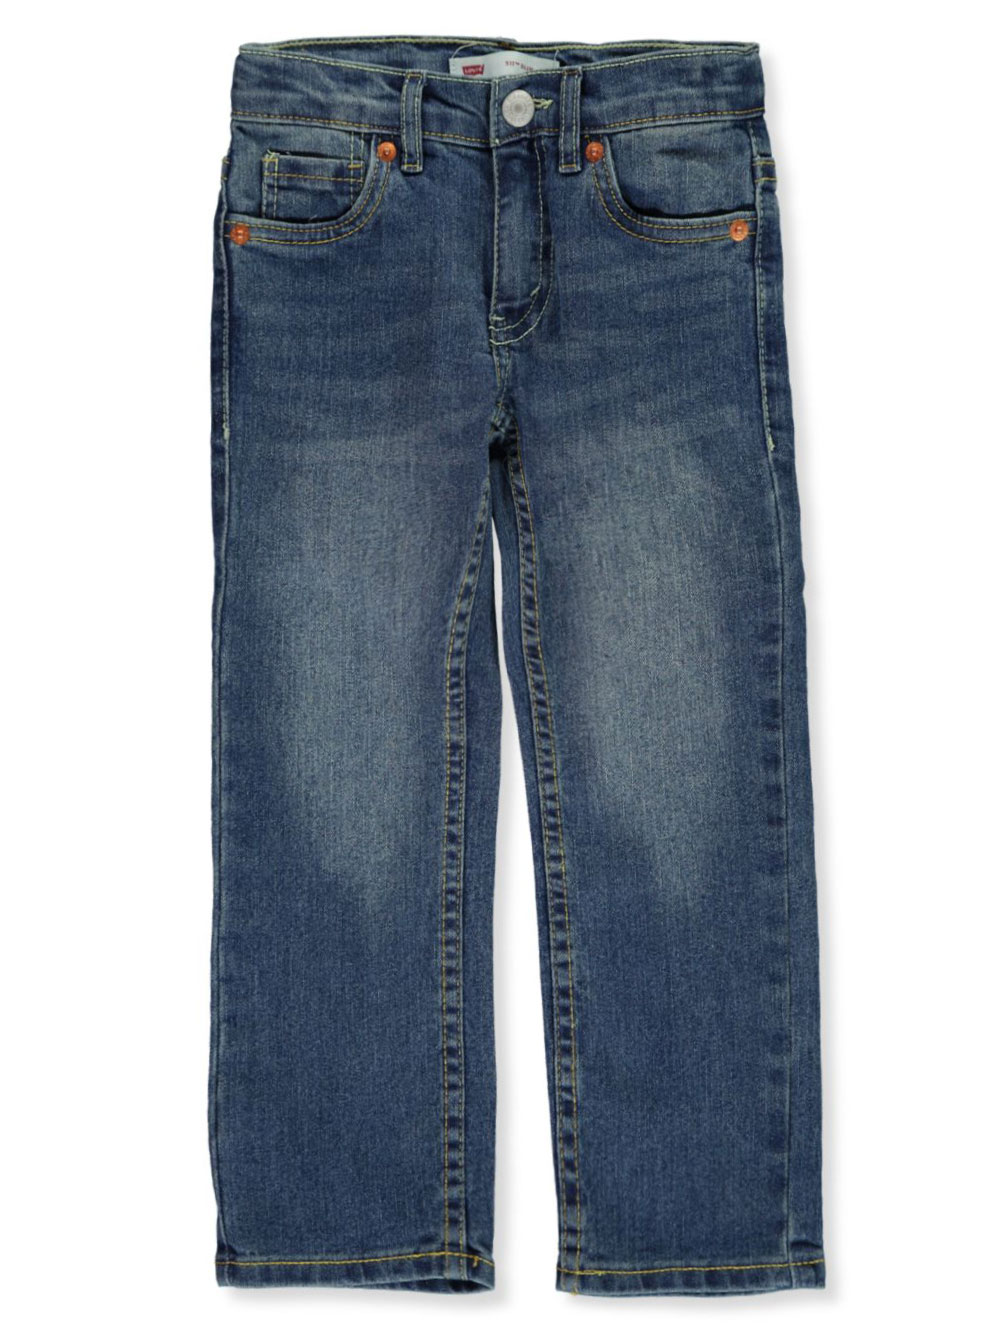 Jeans Denim Construction 511 Slim Fit